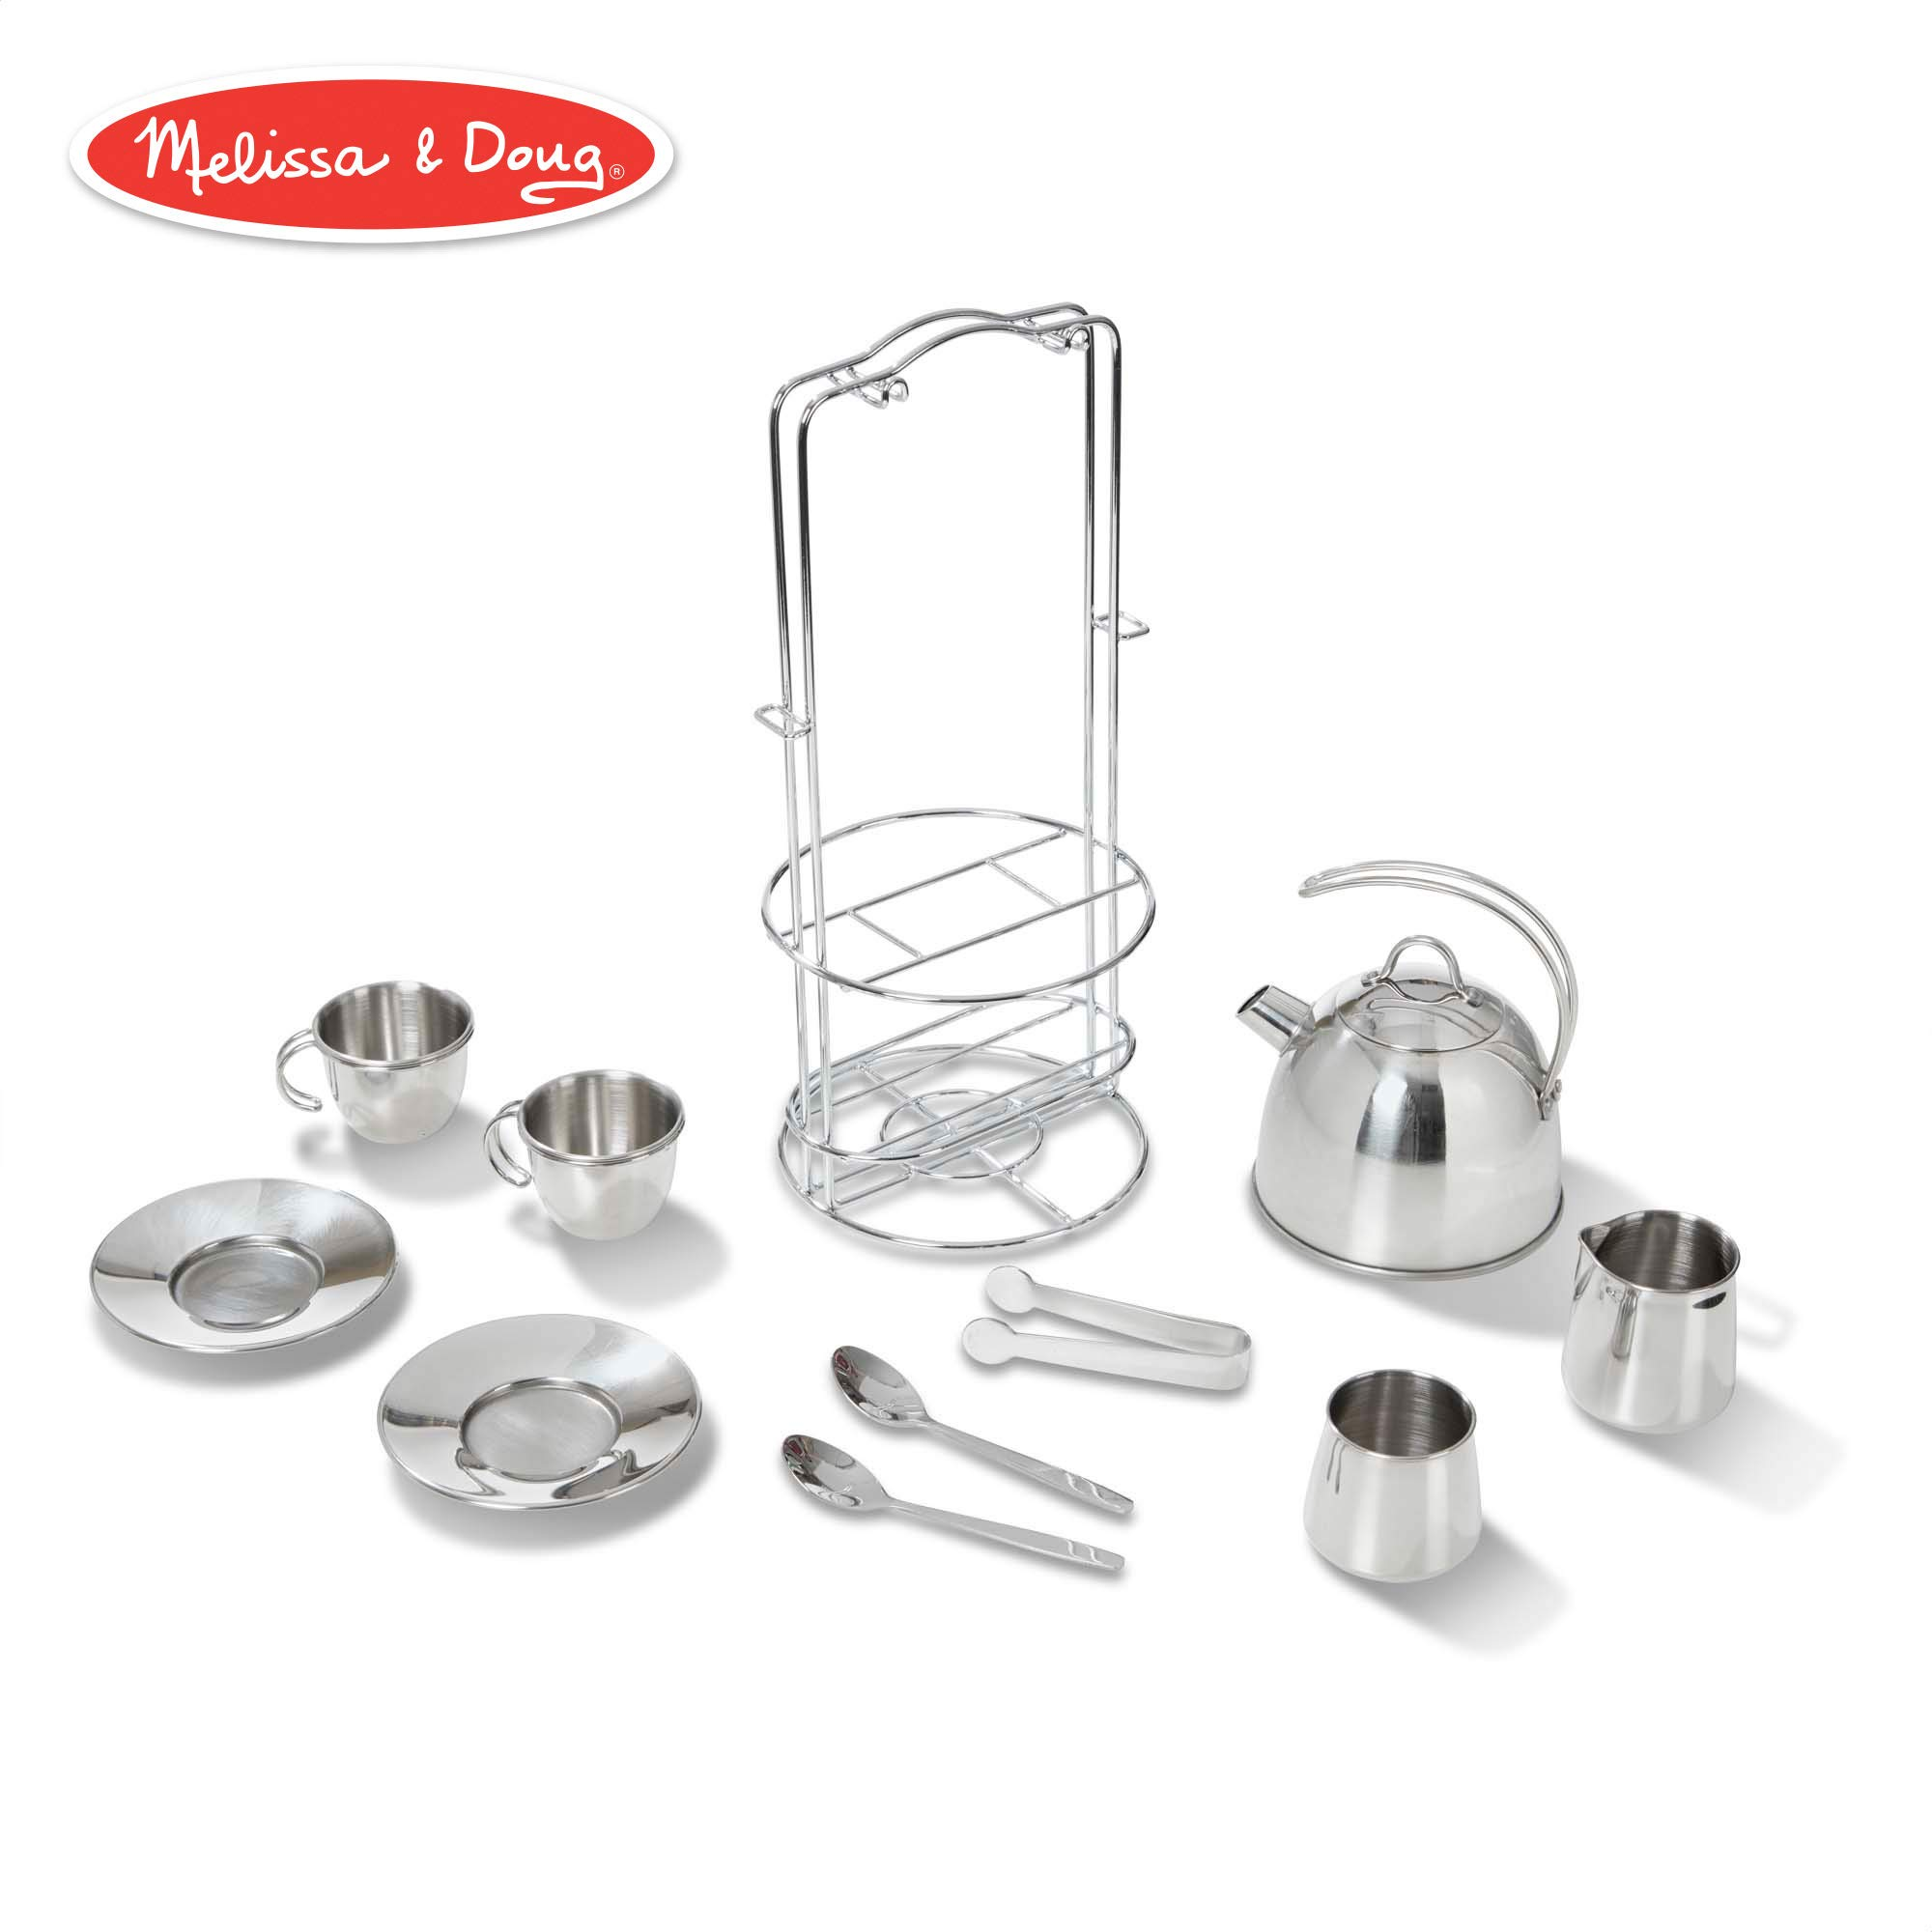 Melissa & Doug Stainless Steel Pretend Play Tea Set and Storage Rack for Kids (11 pcs)